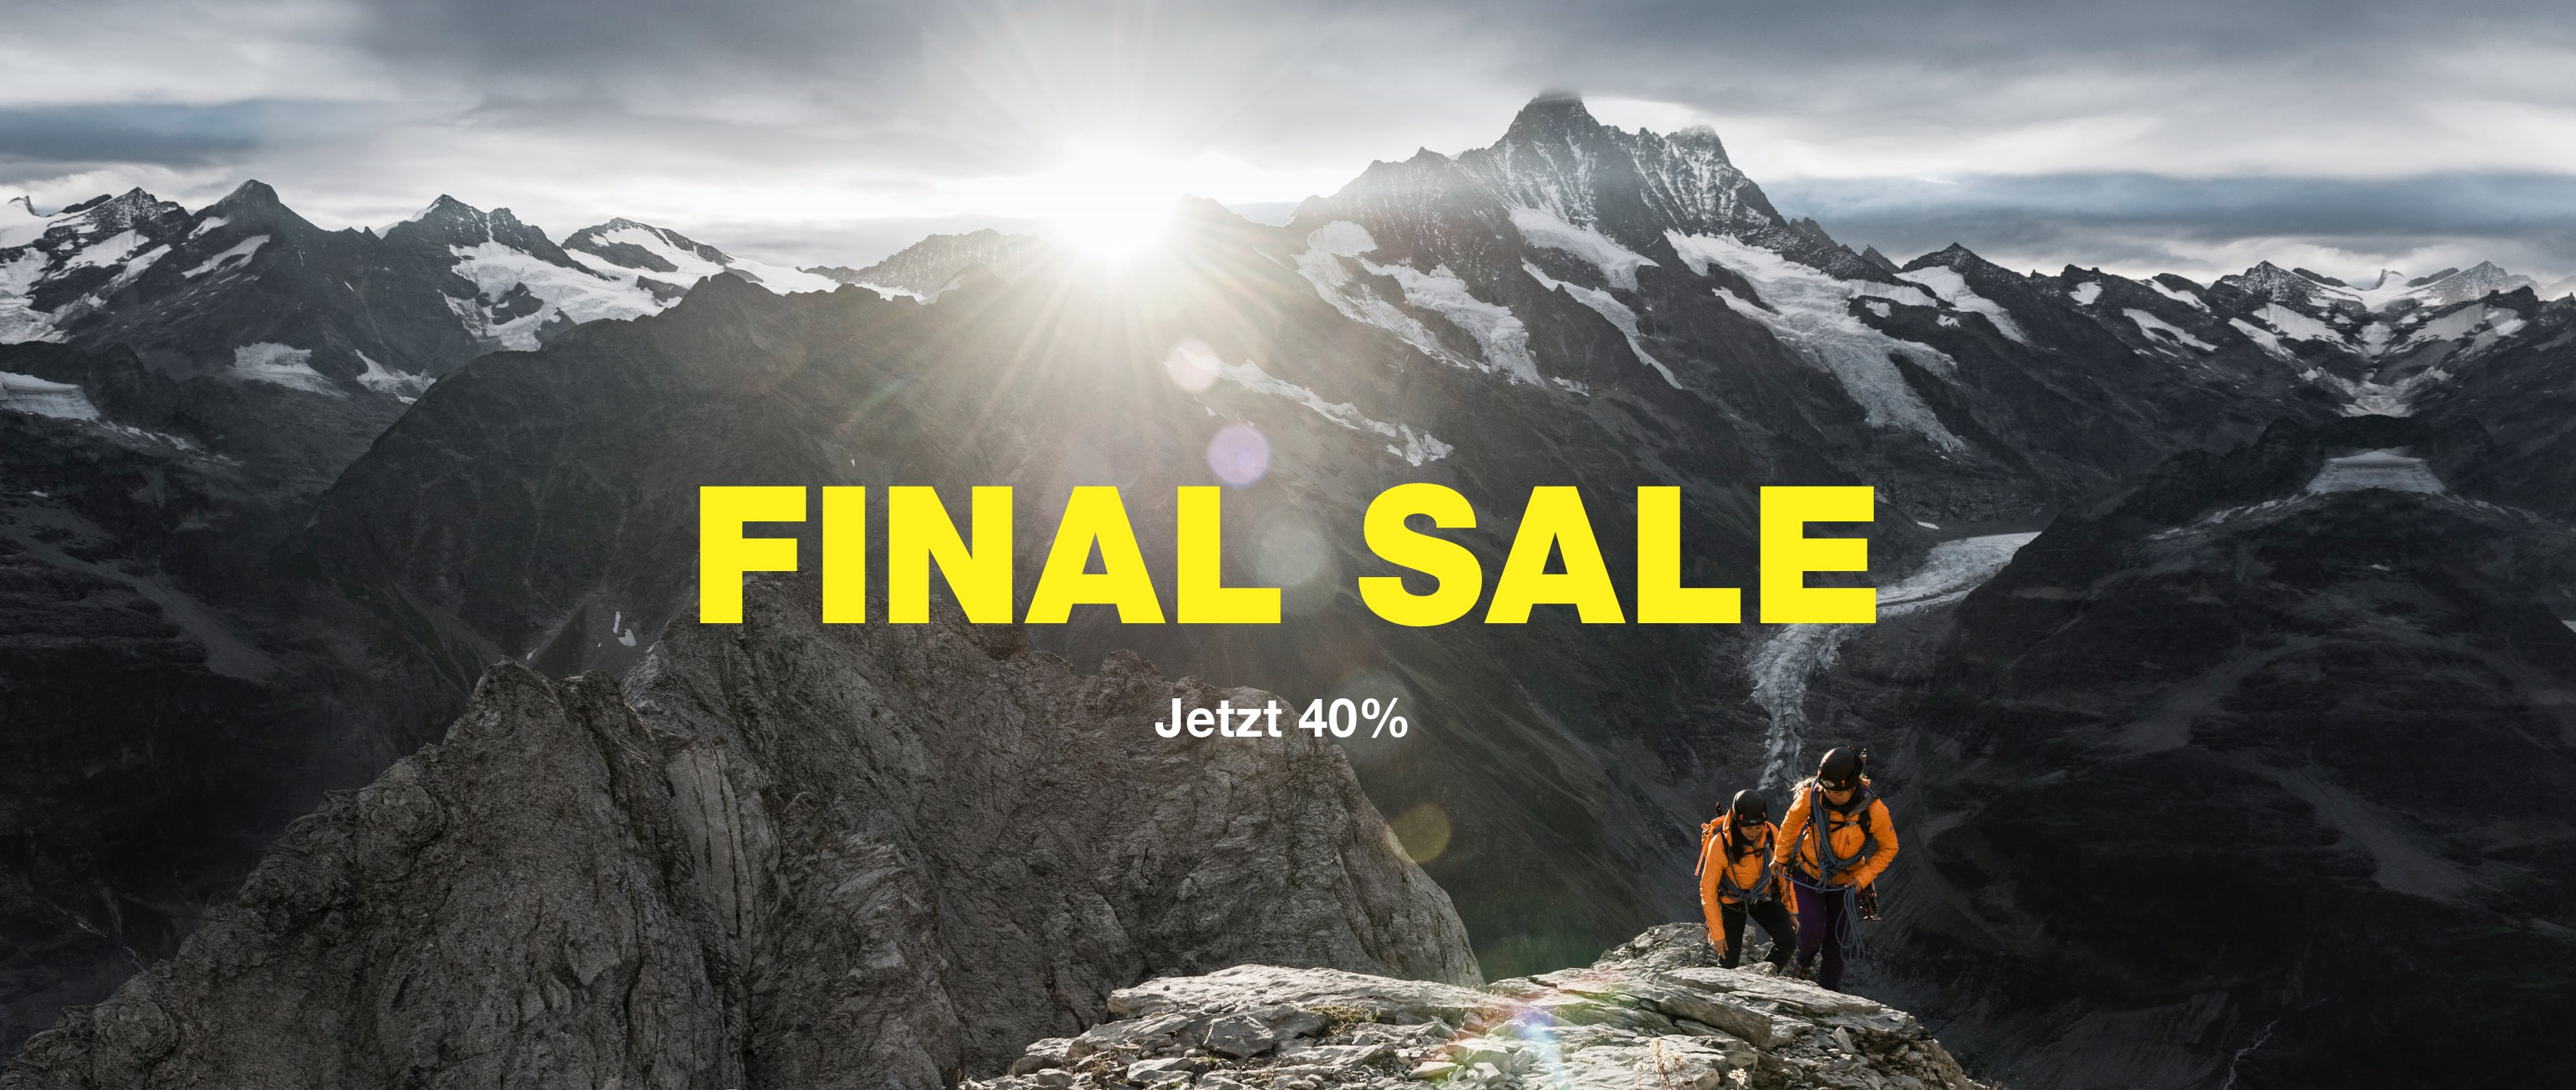 Mammut Final Sale der Sommer-Kollektion